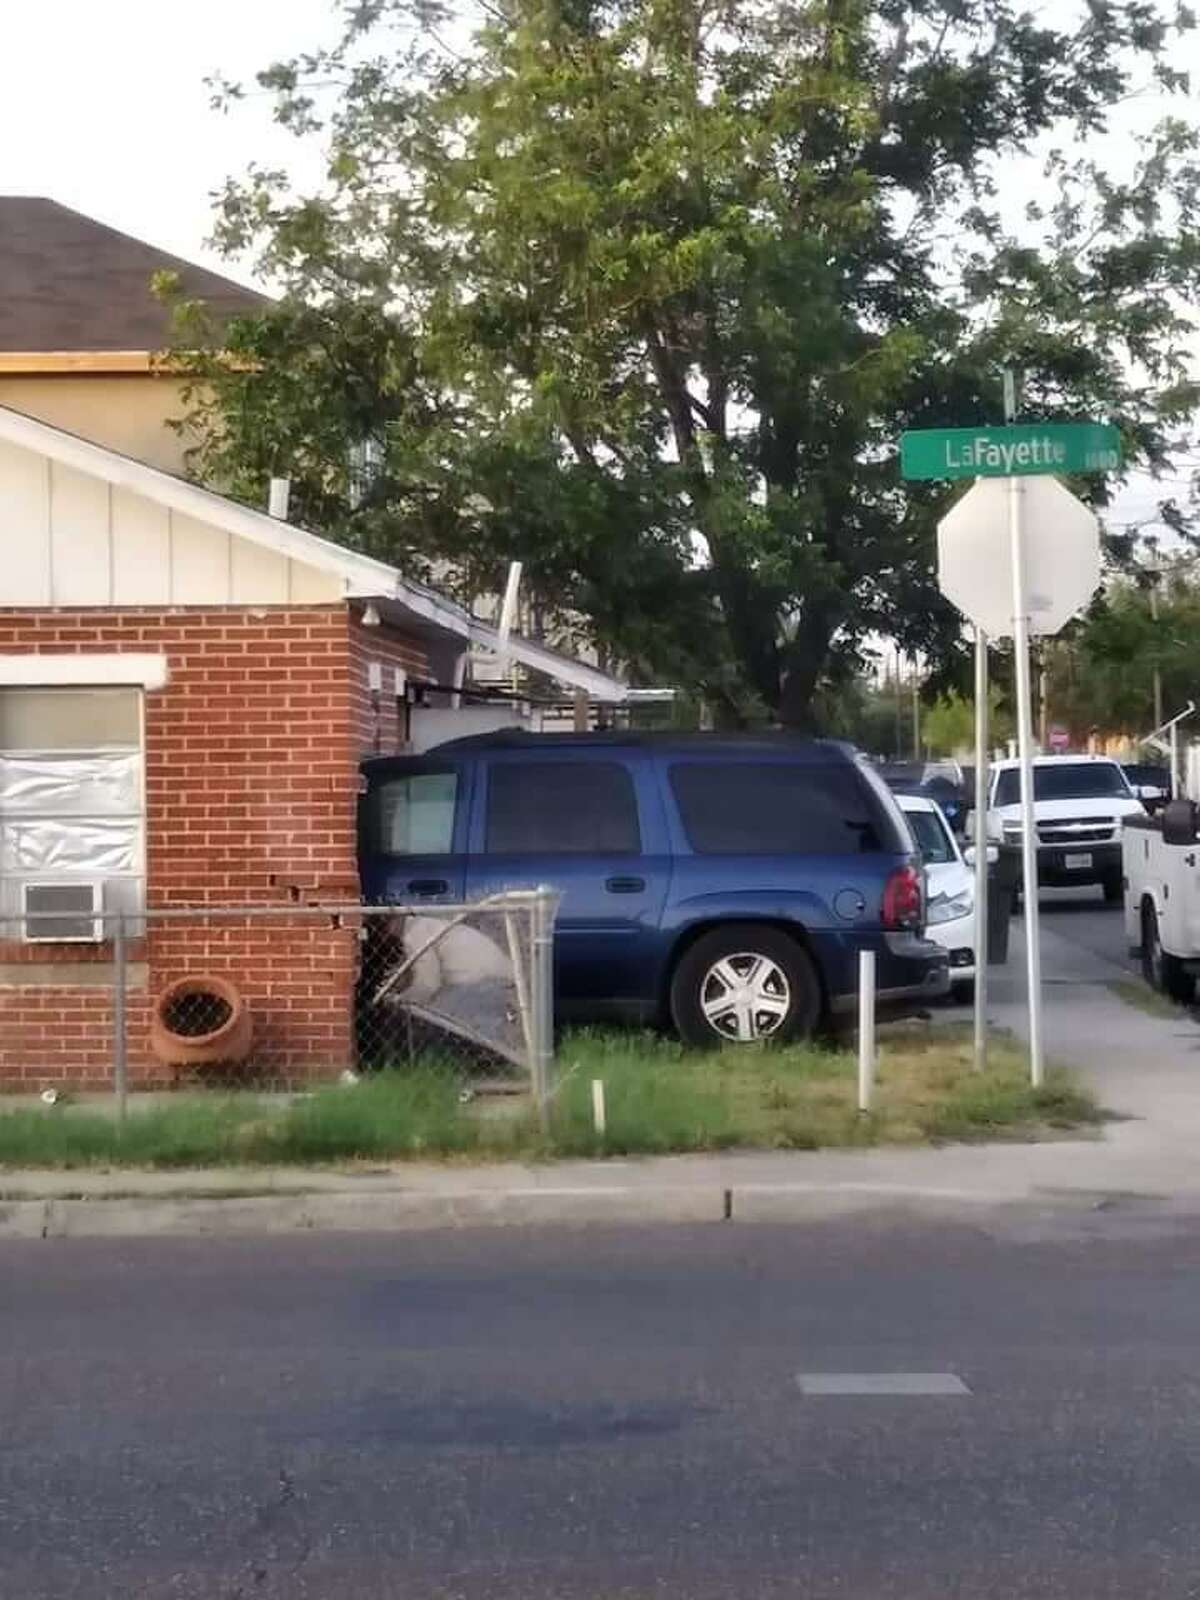 A vehicle crashed into a home in the 1500 block of Lafayette Street. A child was taken to the hospital as a precautionary measure.